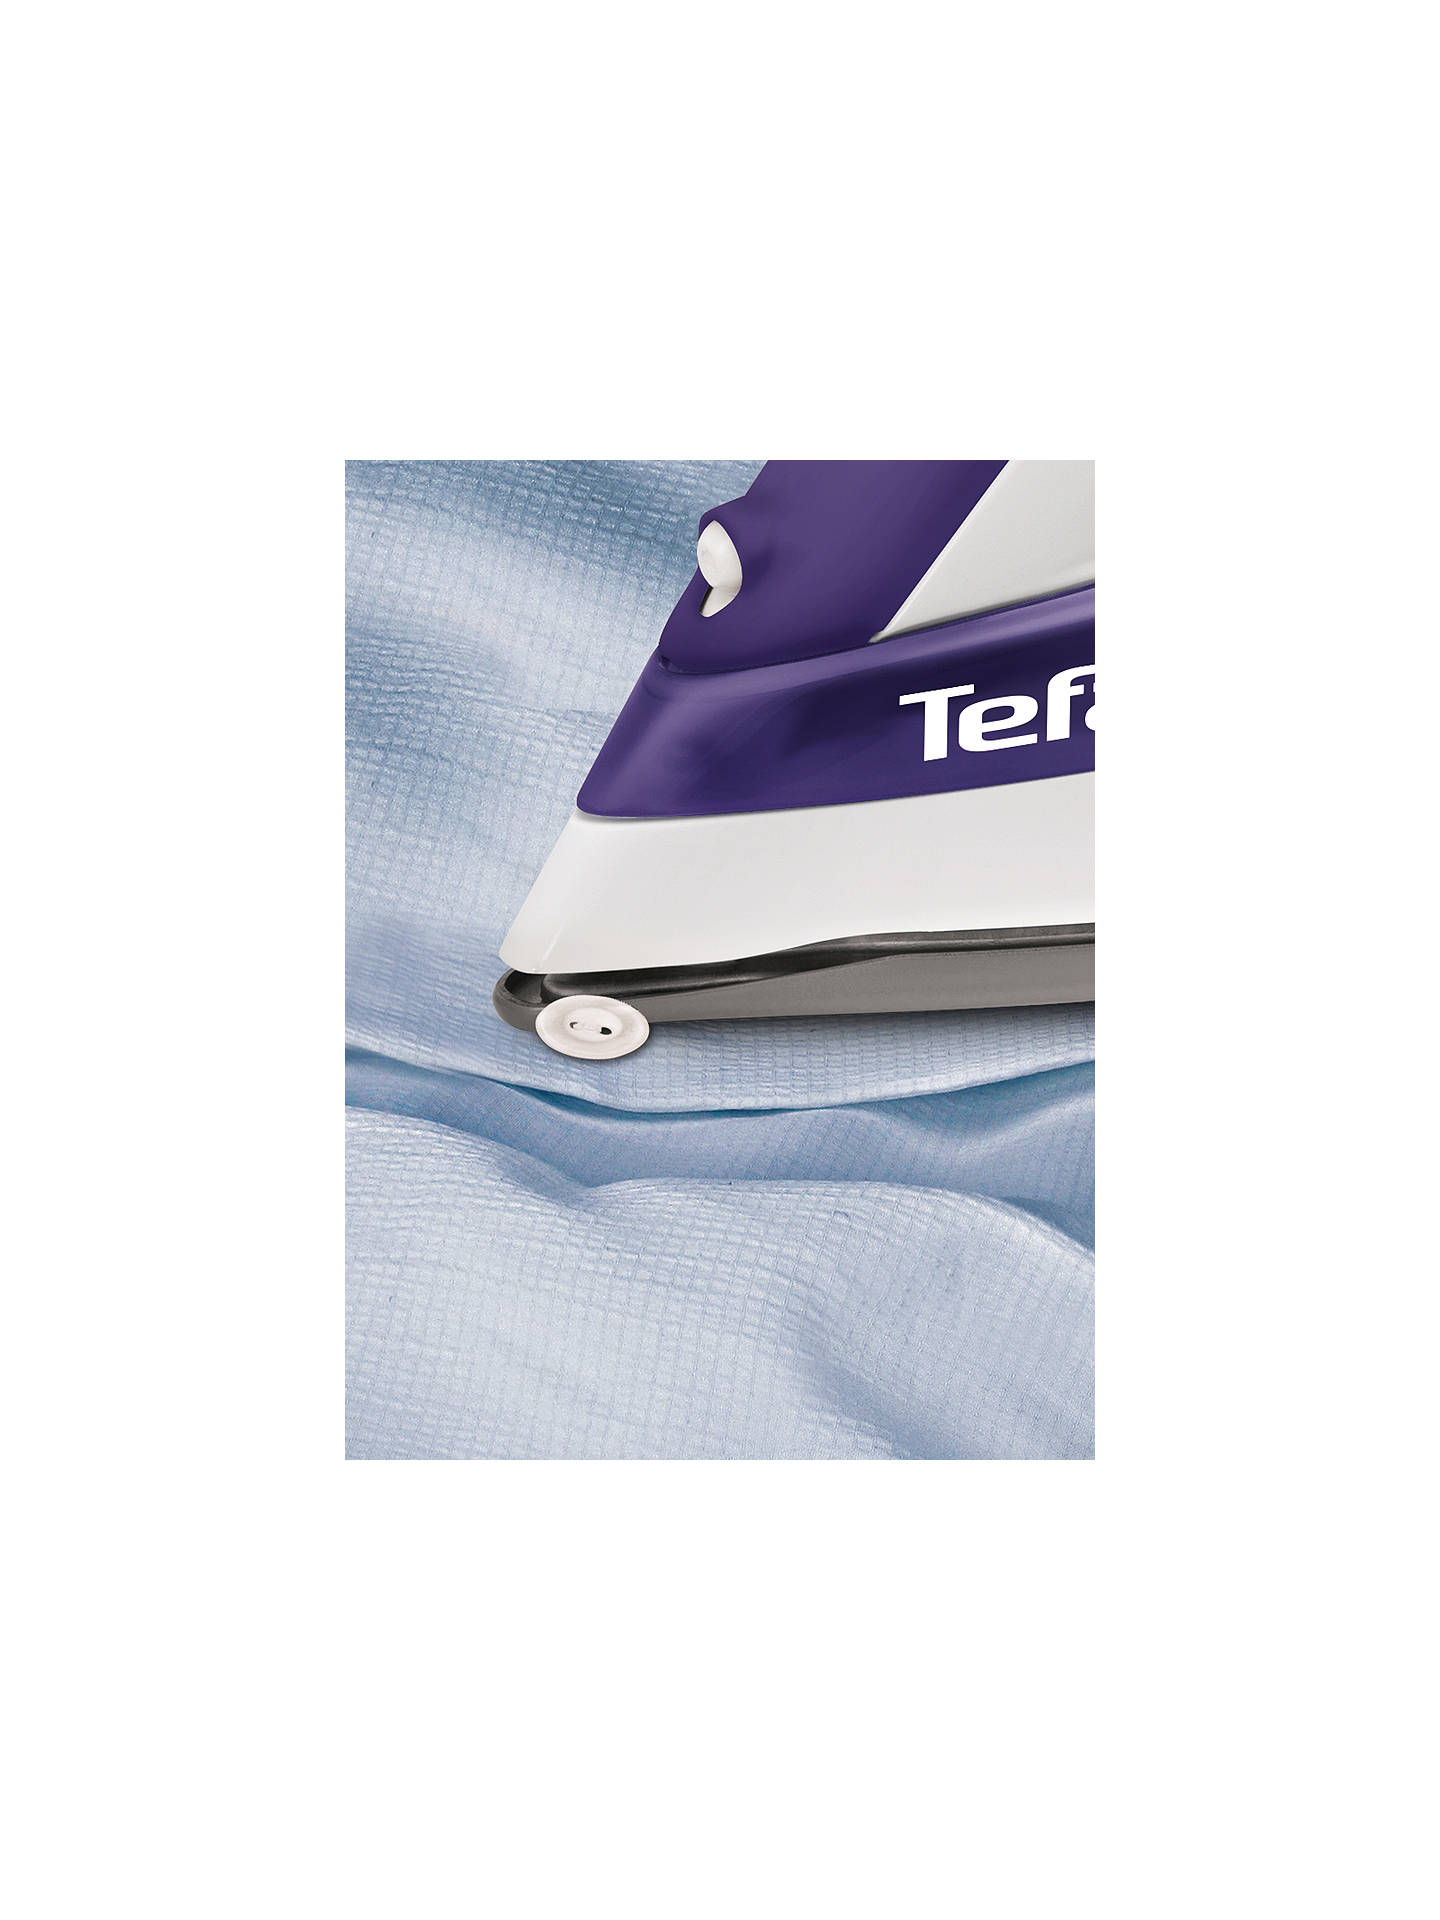 Buy Tefal FV9966 Freemove Cordless Iron Online at johnlewis.com